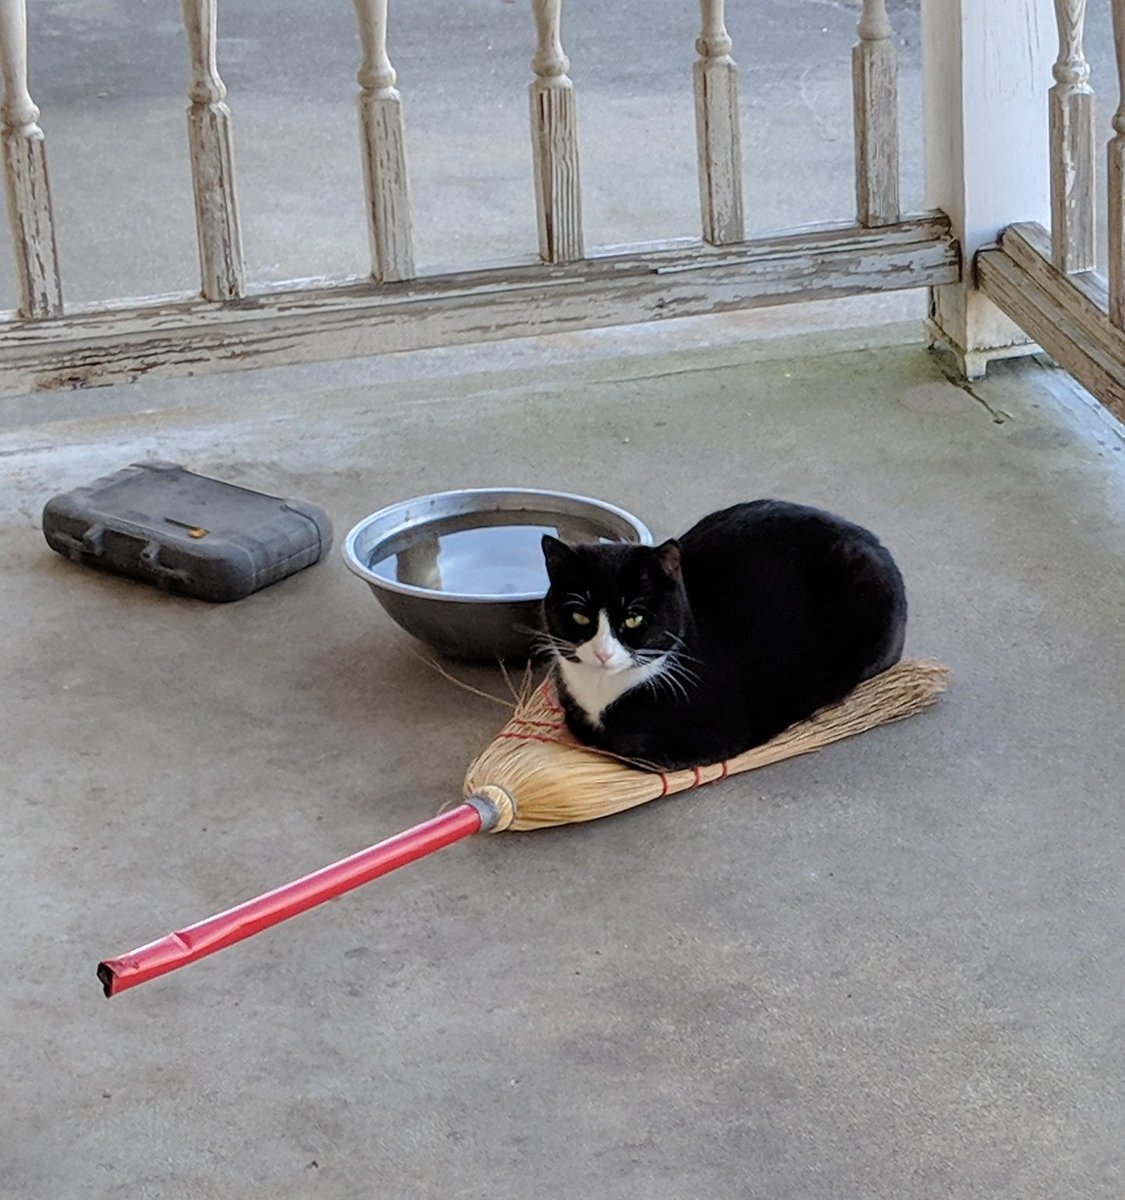 black cat laying on bristle part of broom, with feet tucked under her